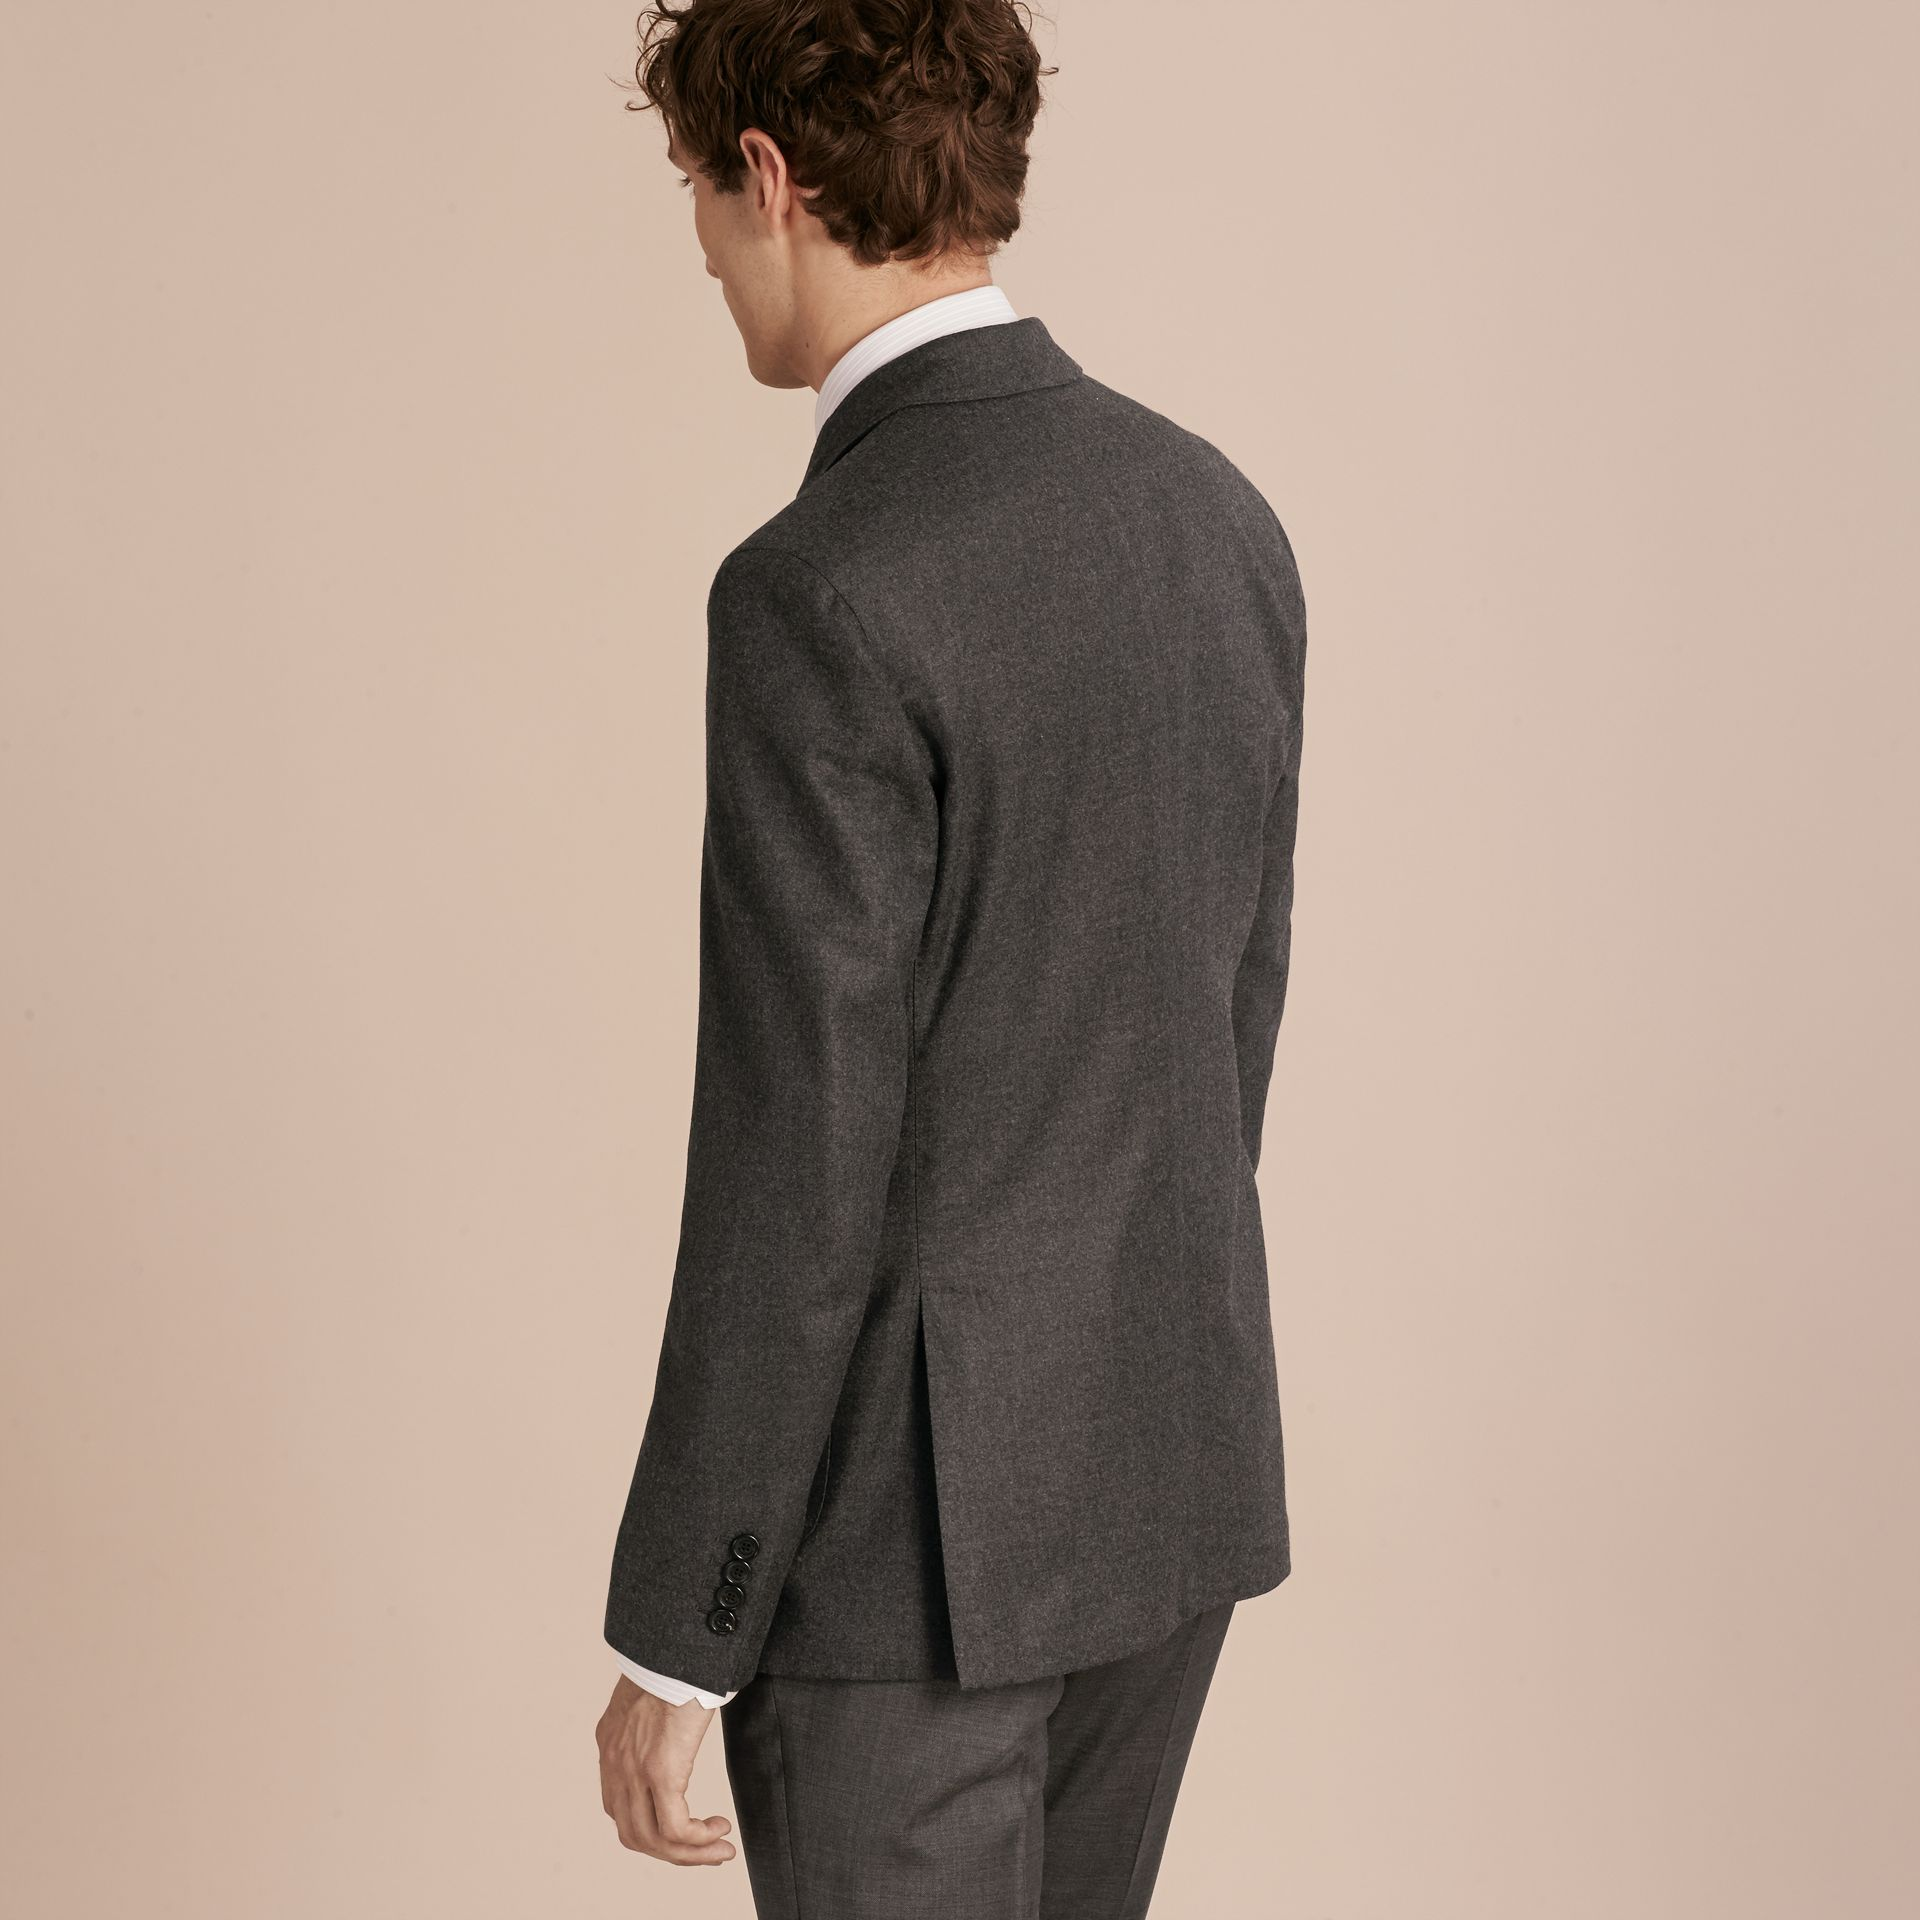 Dark grey melange Modern Fit Tailored Wool Jacket - gallery image 3